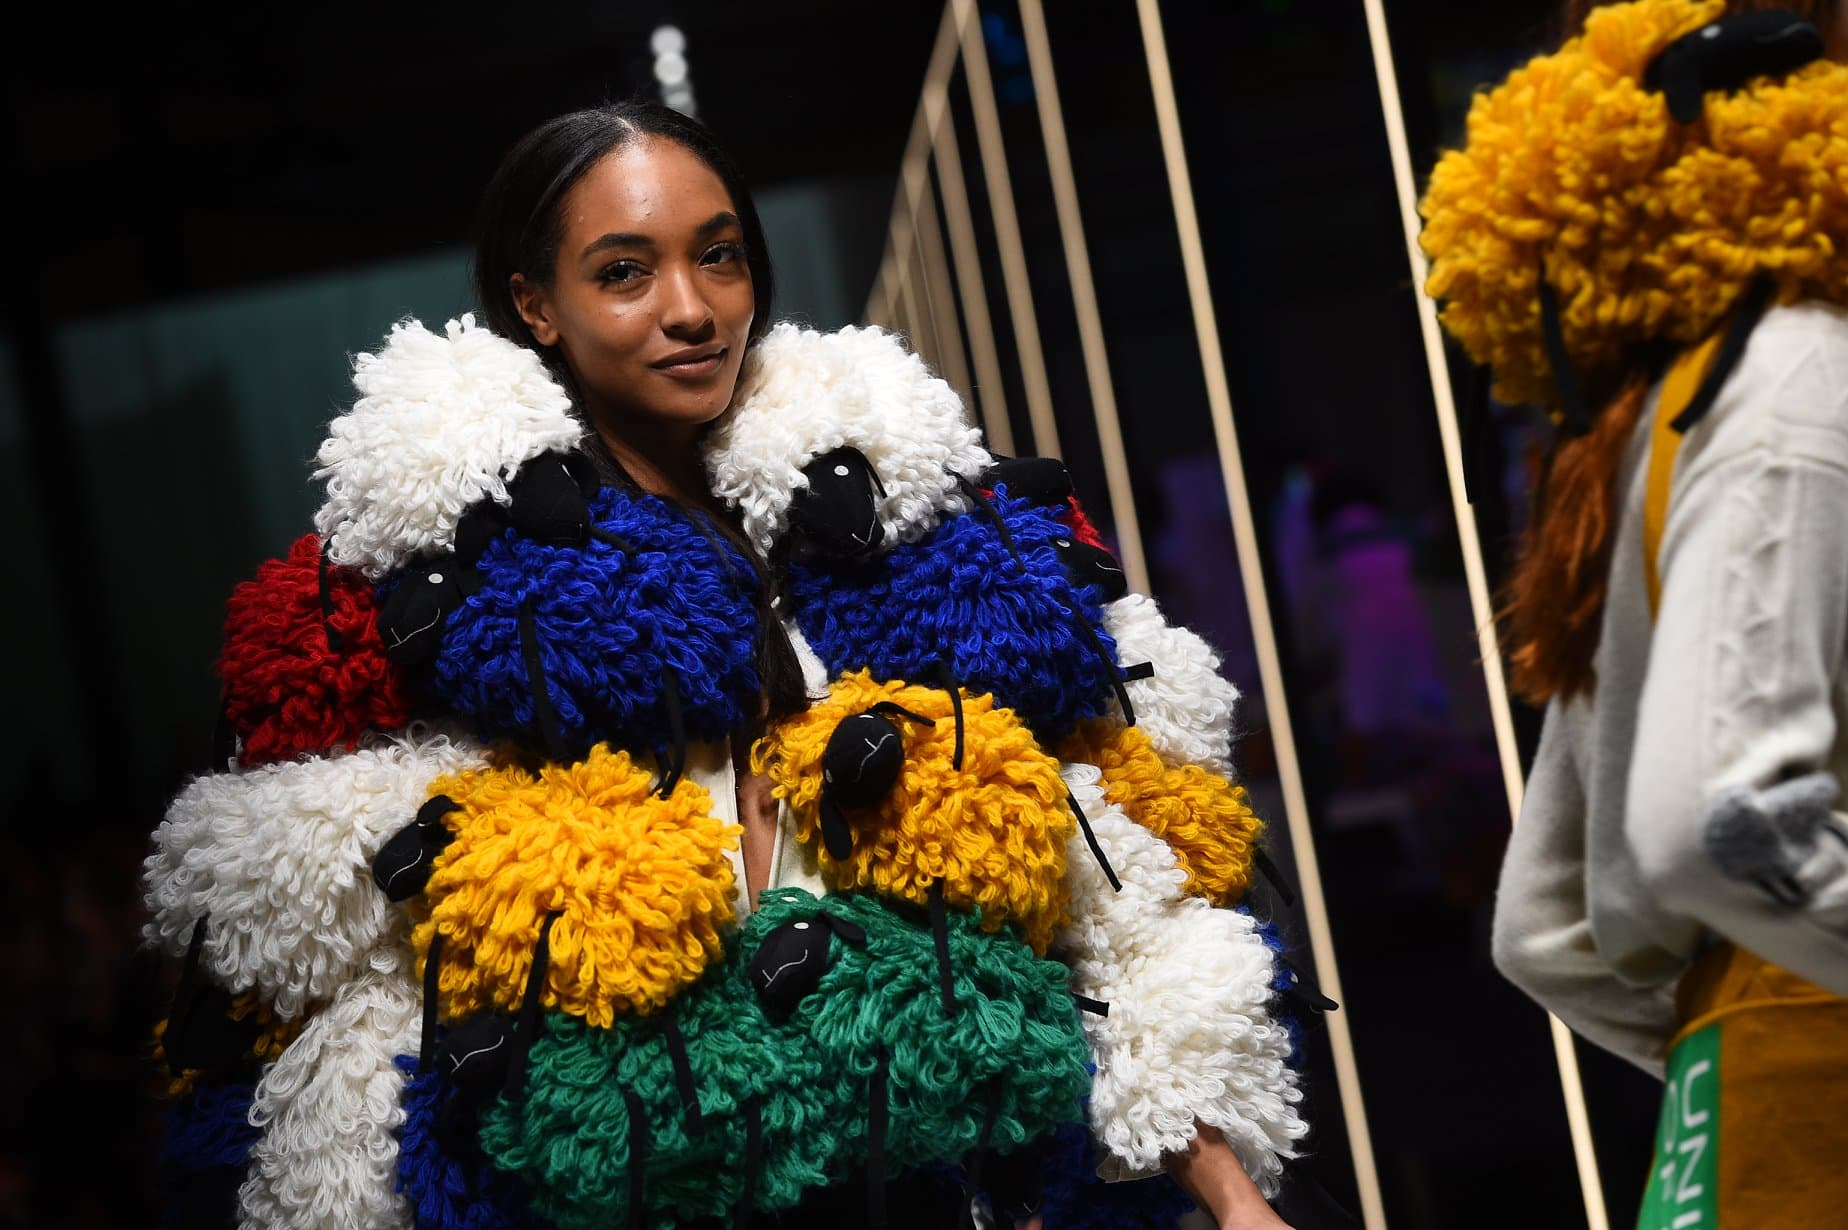 Benetton by Jean Charles de Castelbajac Milan Ready-to-Wear Fall-Winter 2019-2020 by RUNWAY MAGAZINE